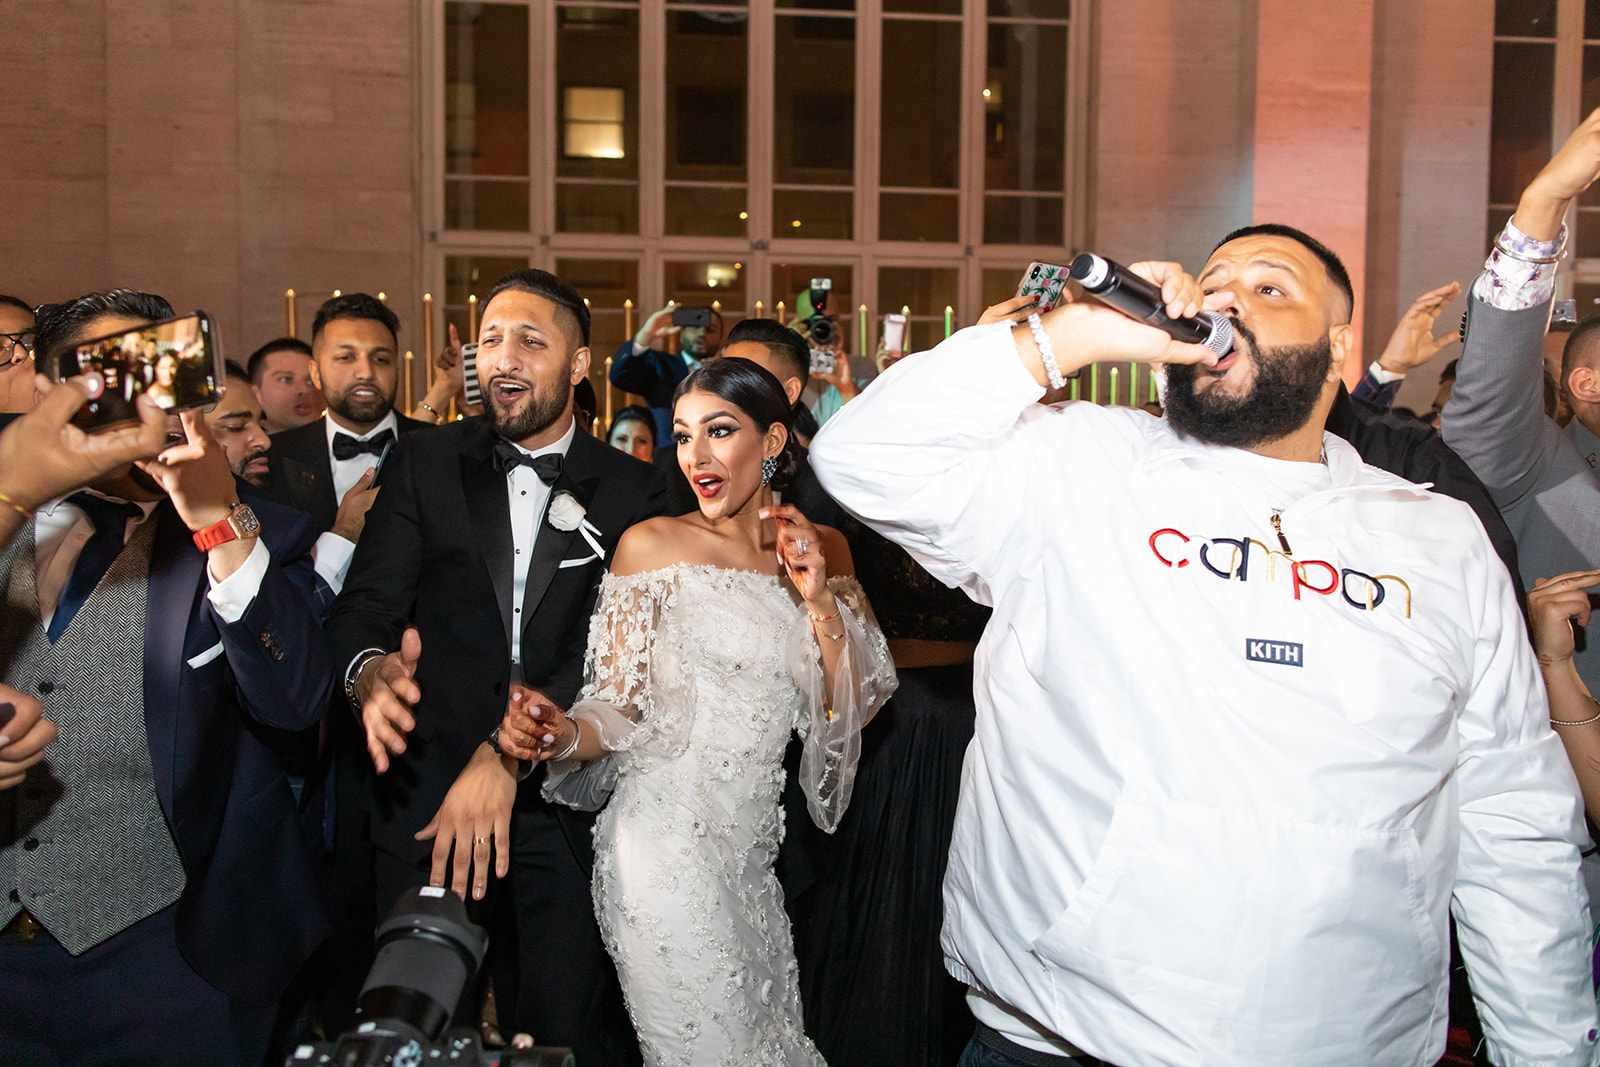 Bride and groom dancing with DJ Khaled